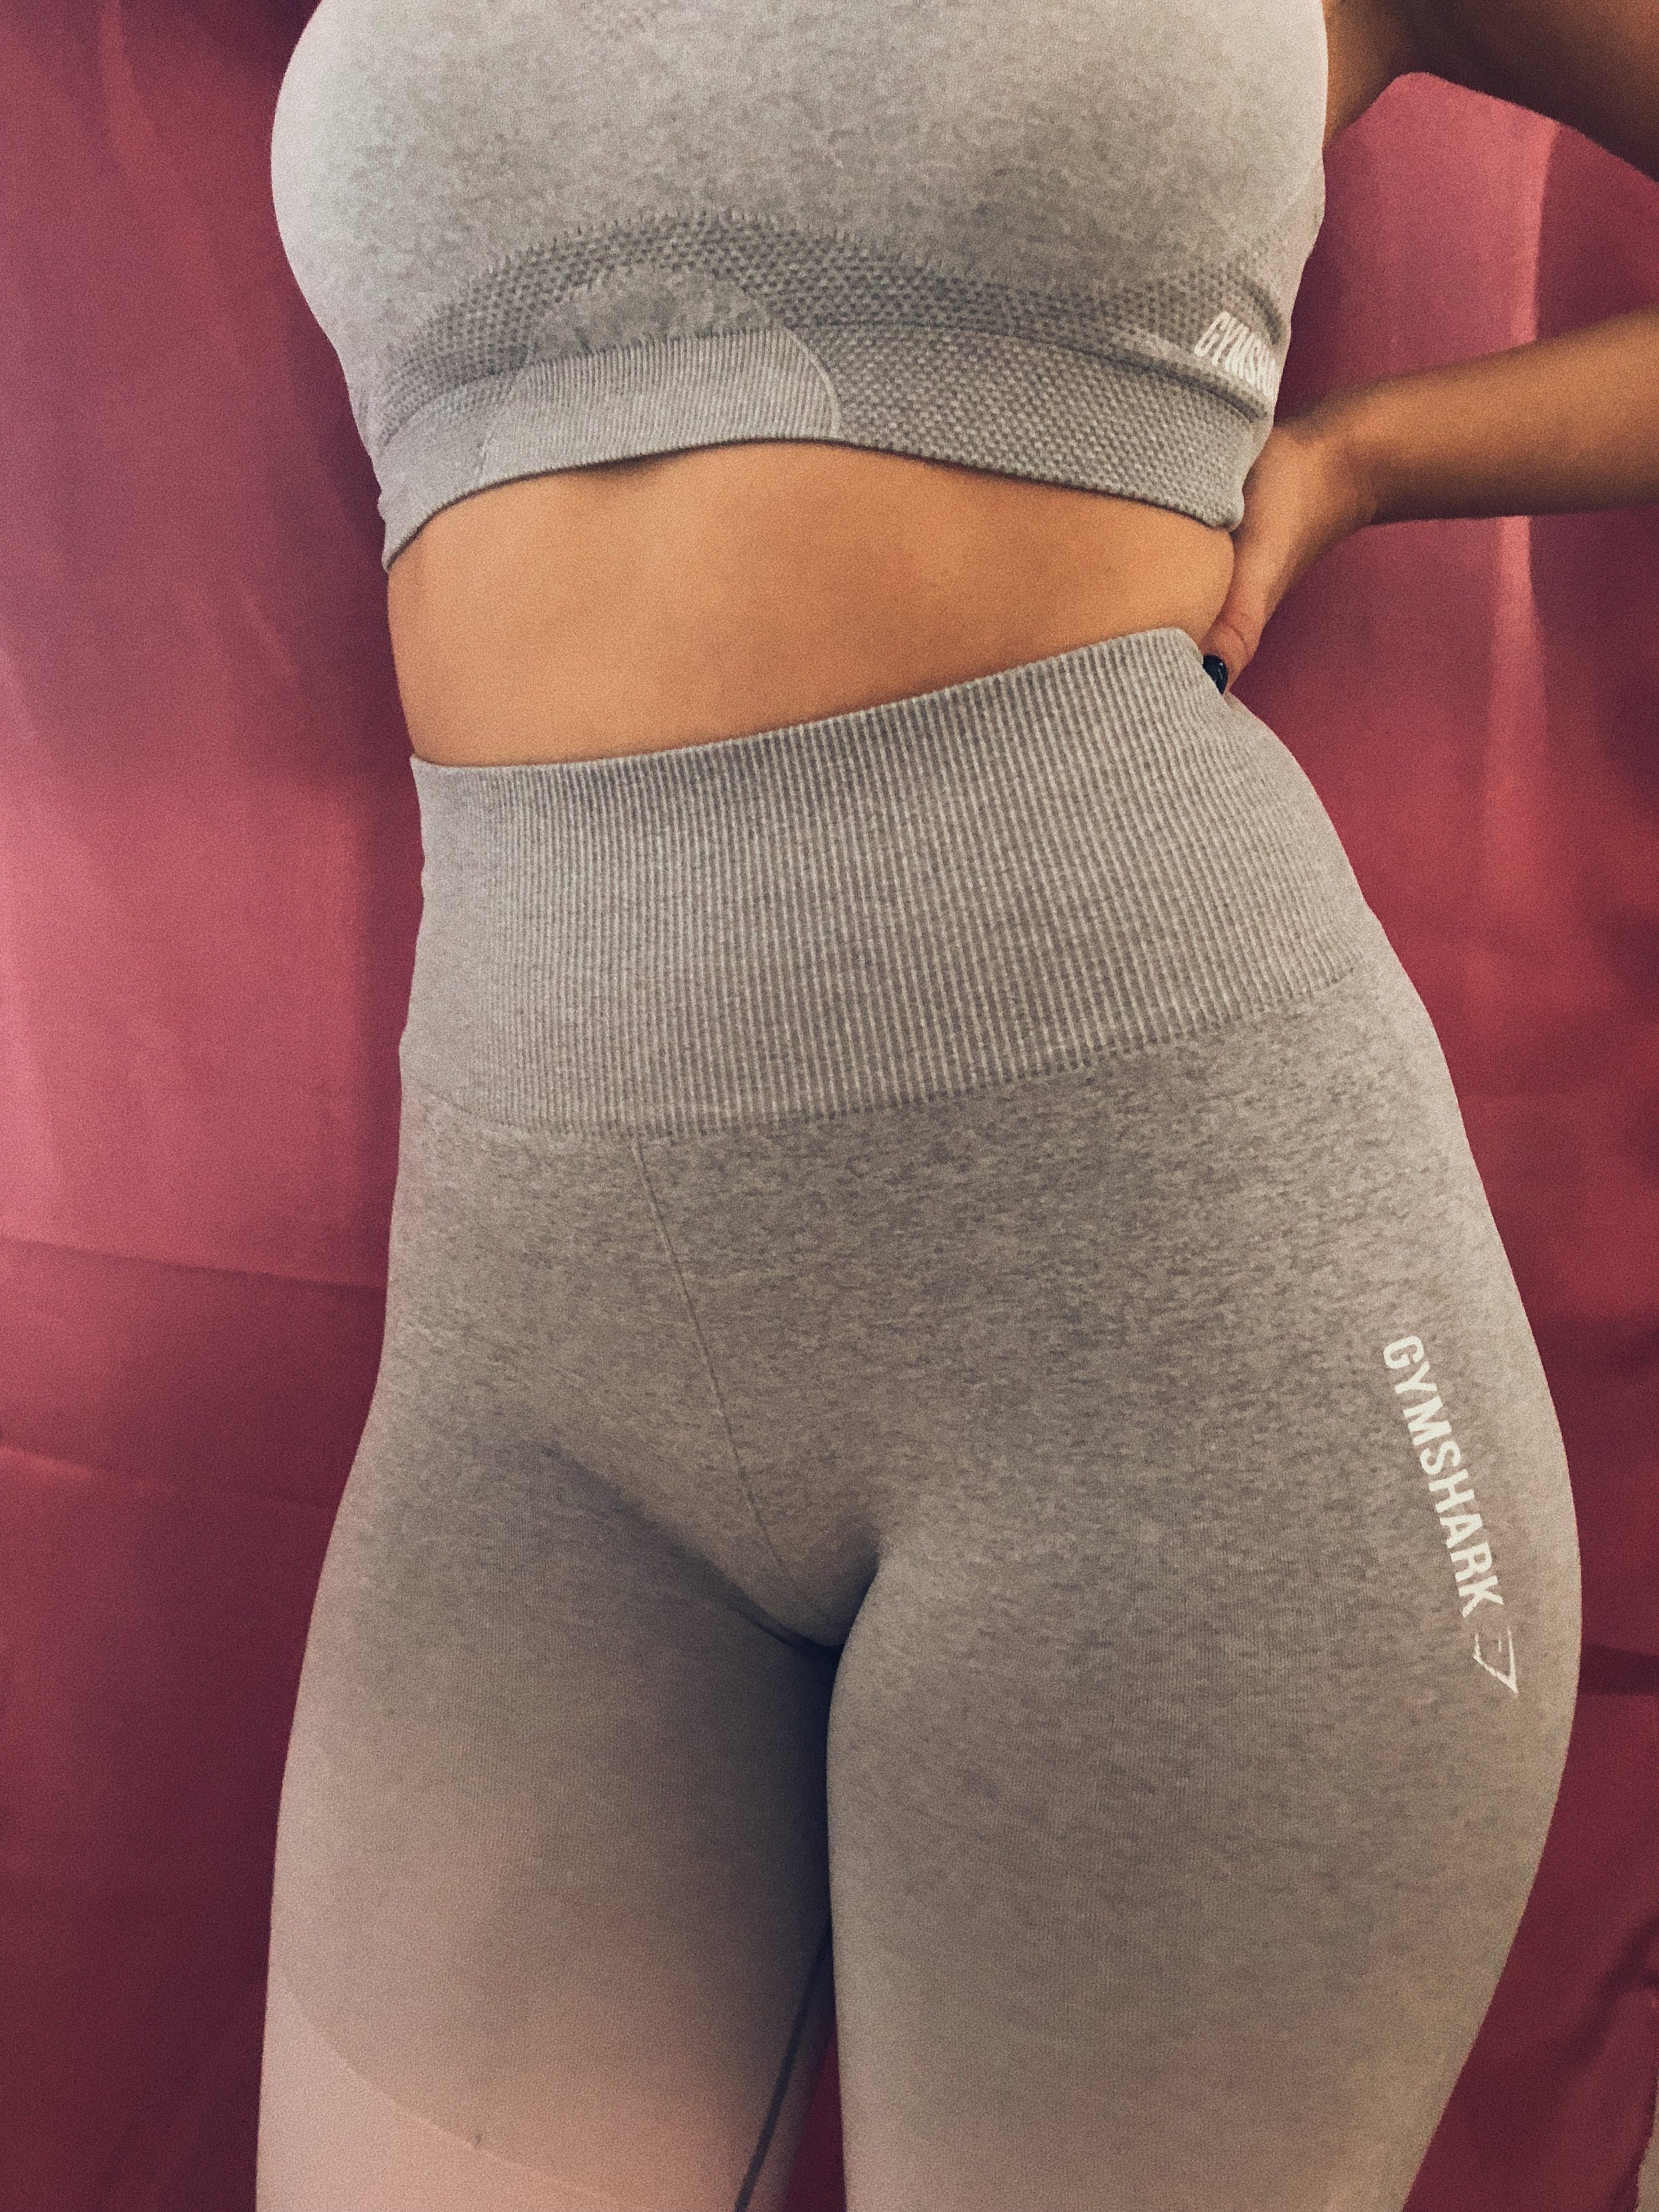 GYMSHARK IS SO WORTH THE HYPE! THE QUALITY IS AMAZING, IT'S STILL QUITE AFFORDABLE AND ALL THE PIECES ARE SUPER FLATTERING. THE   SEAMLESS OMBRE SET   IS MY FAVORITE. - J